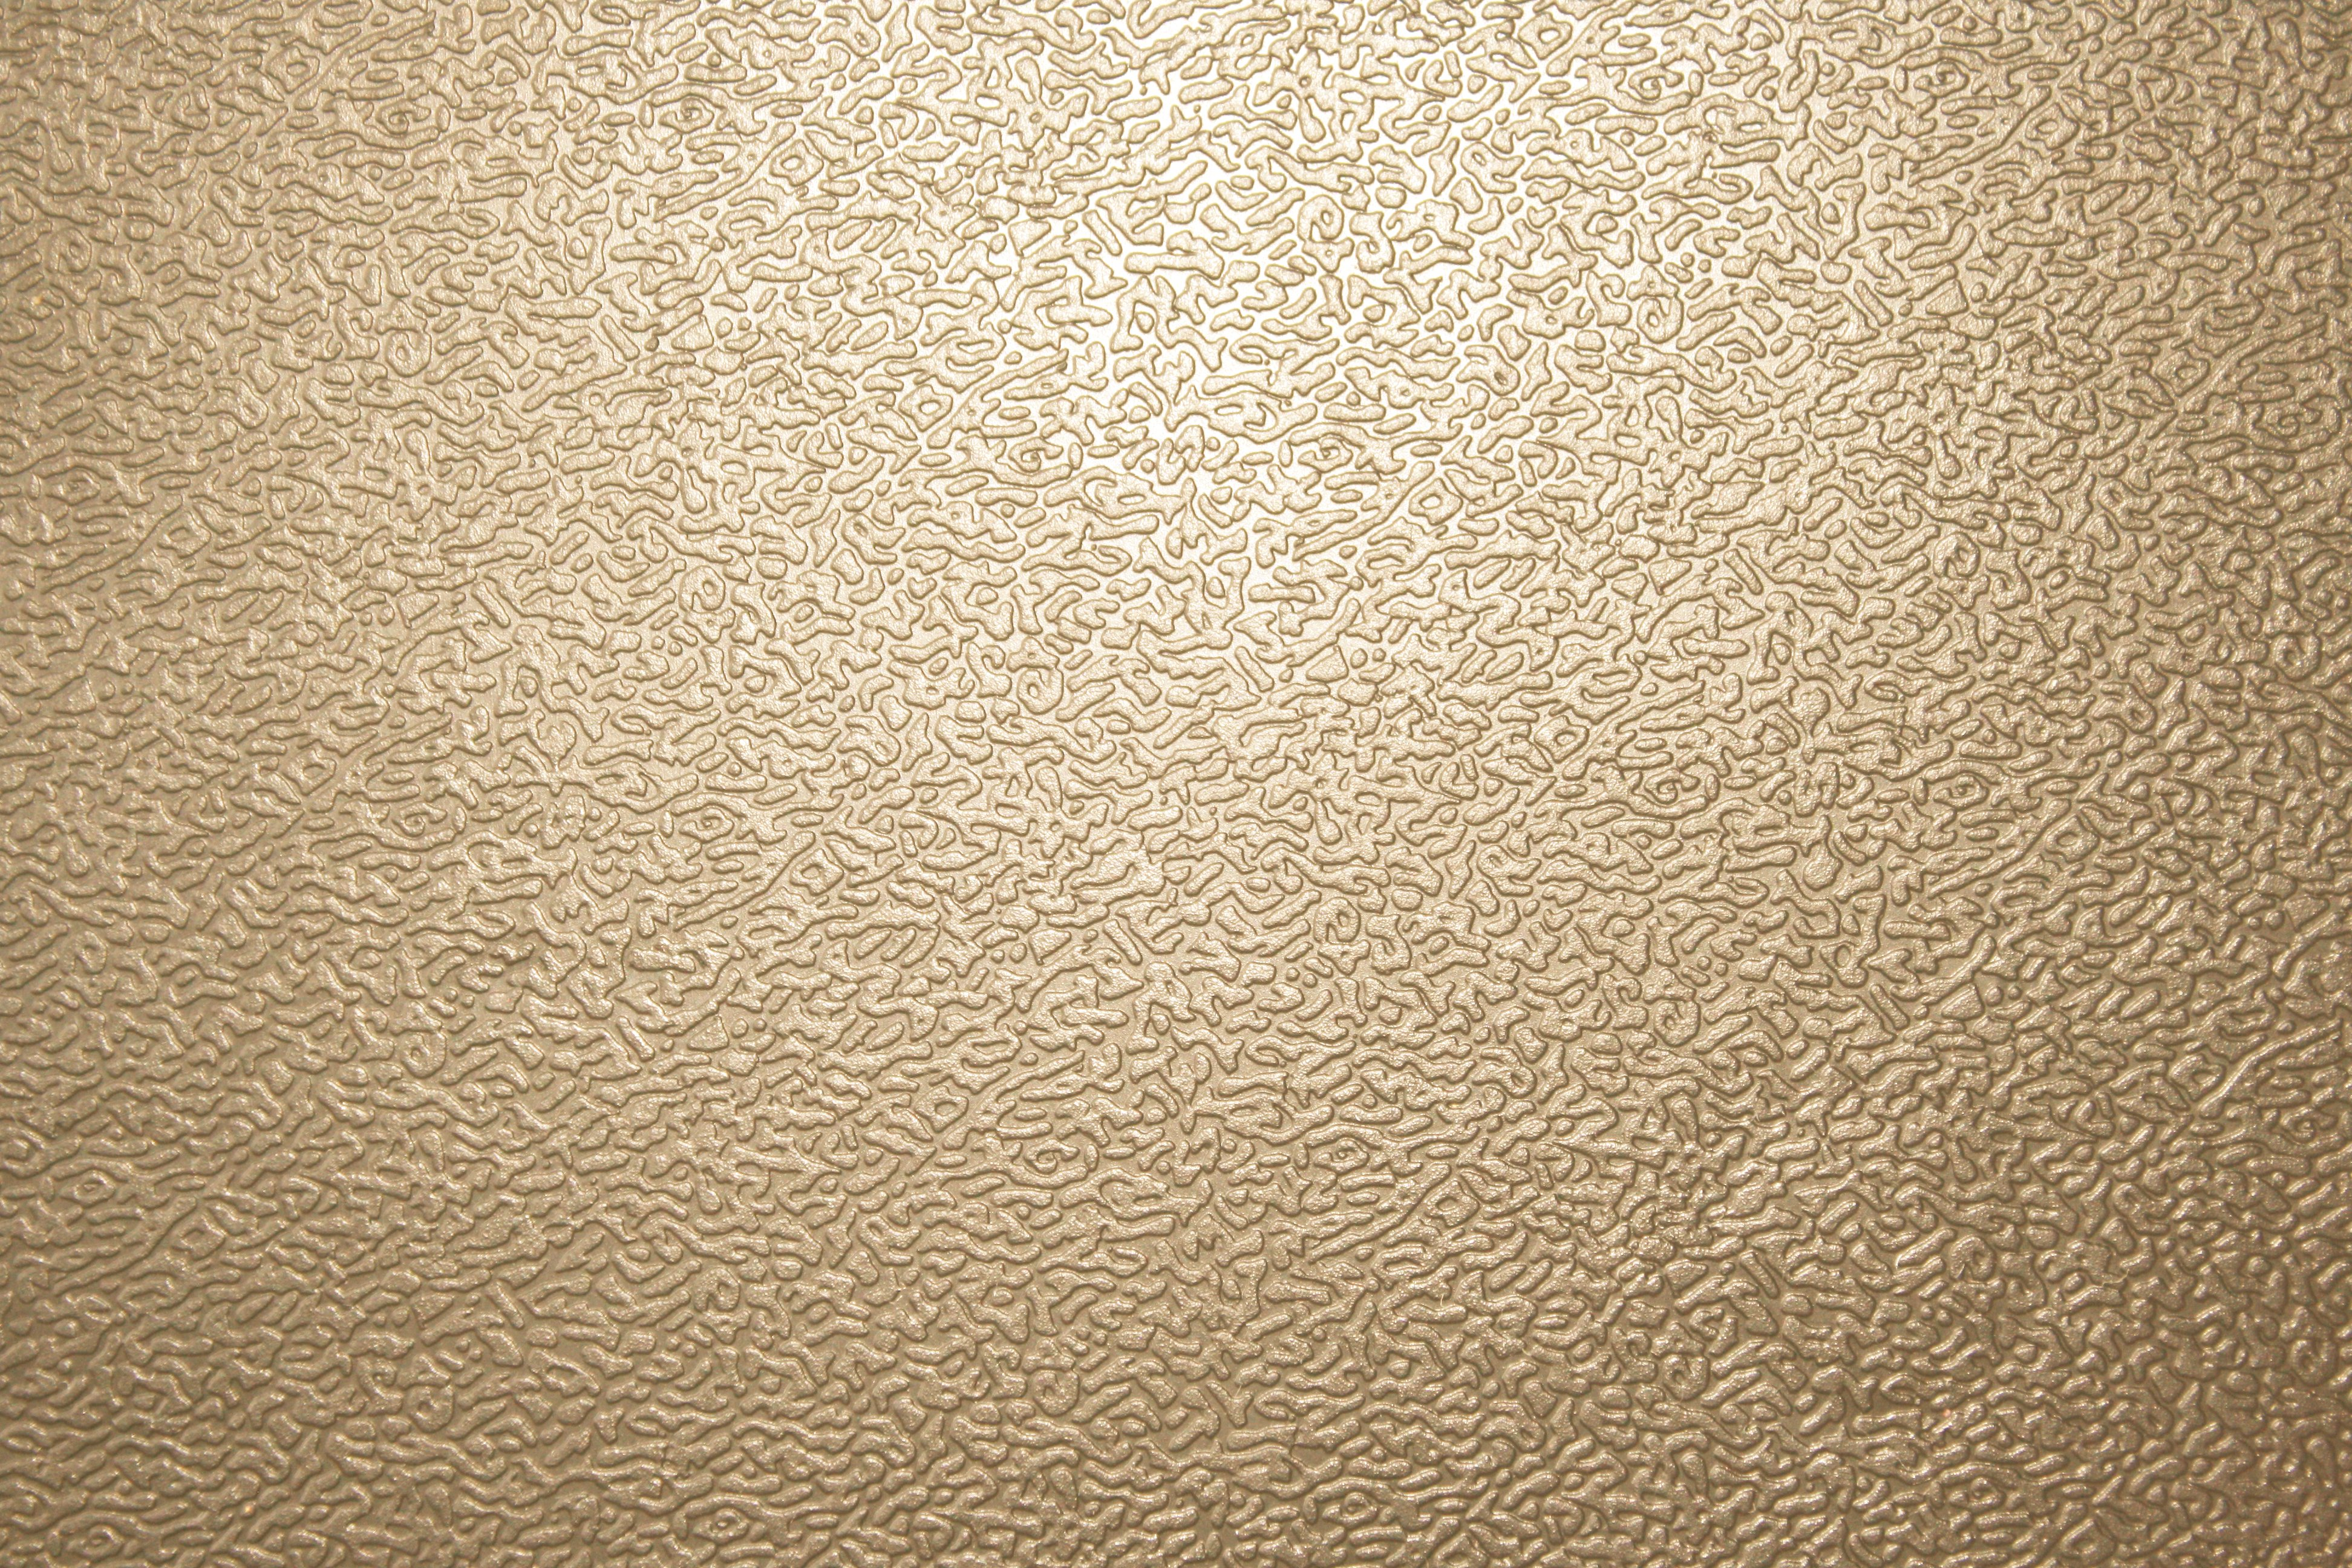 Textured Tan Plastic Close Up Picture  Free Photograph  Photos